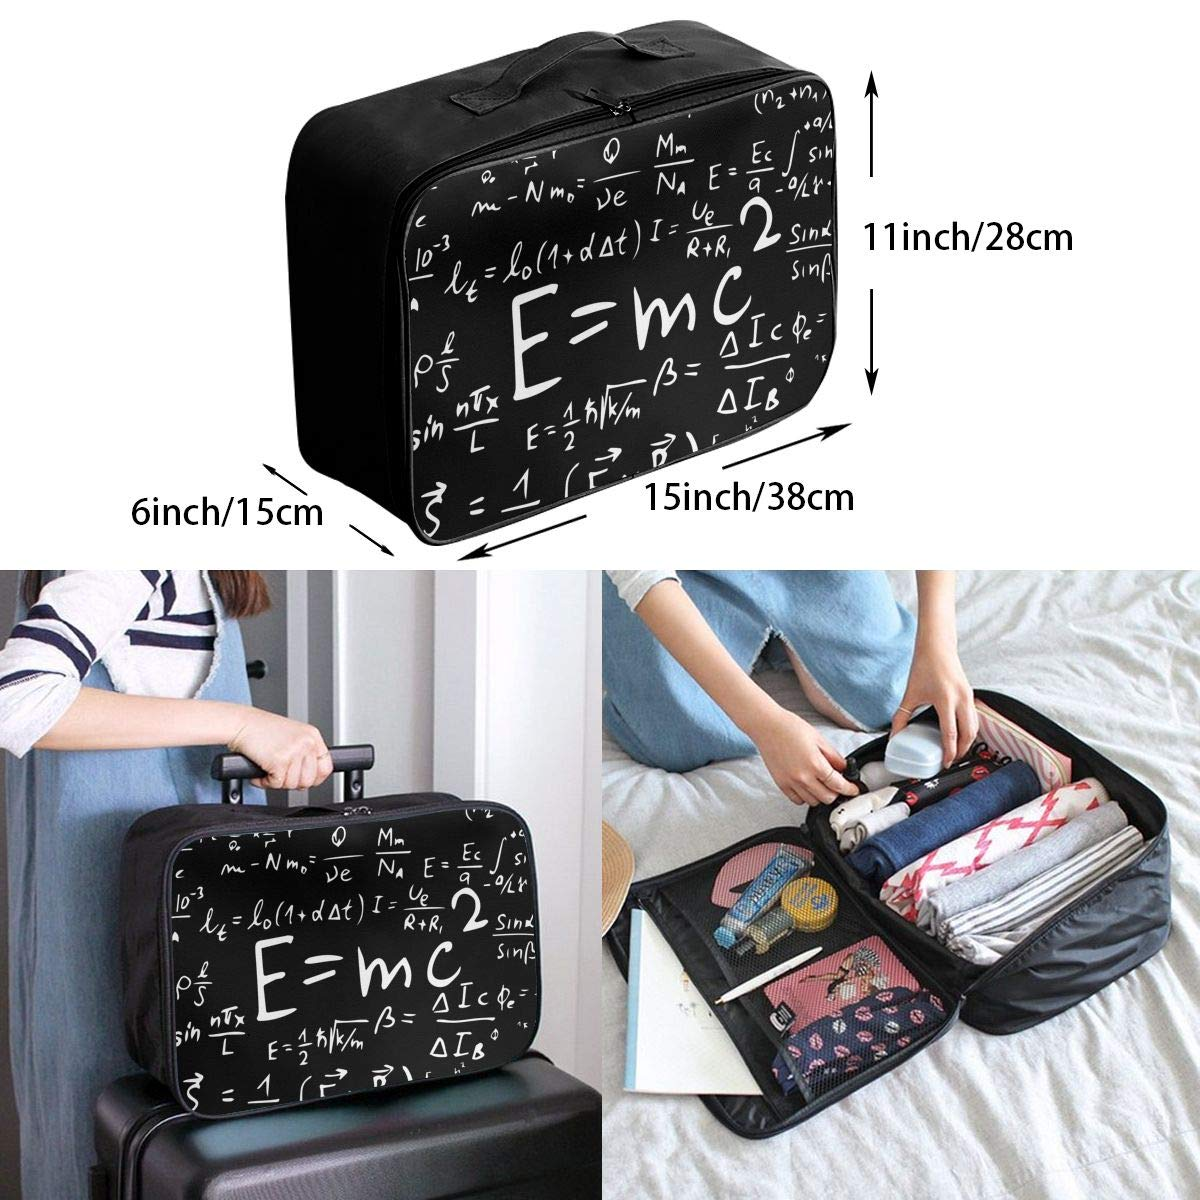 Women /& Men Foldable Travel Duffel Bag Mathematical And Physics Formulas For Luggage Gym Sports